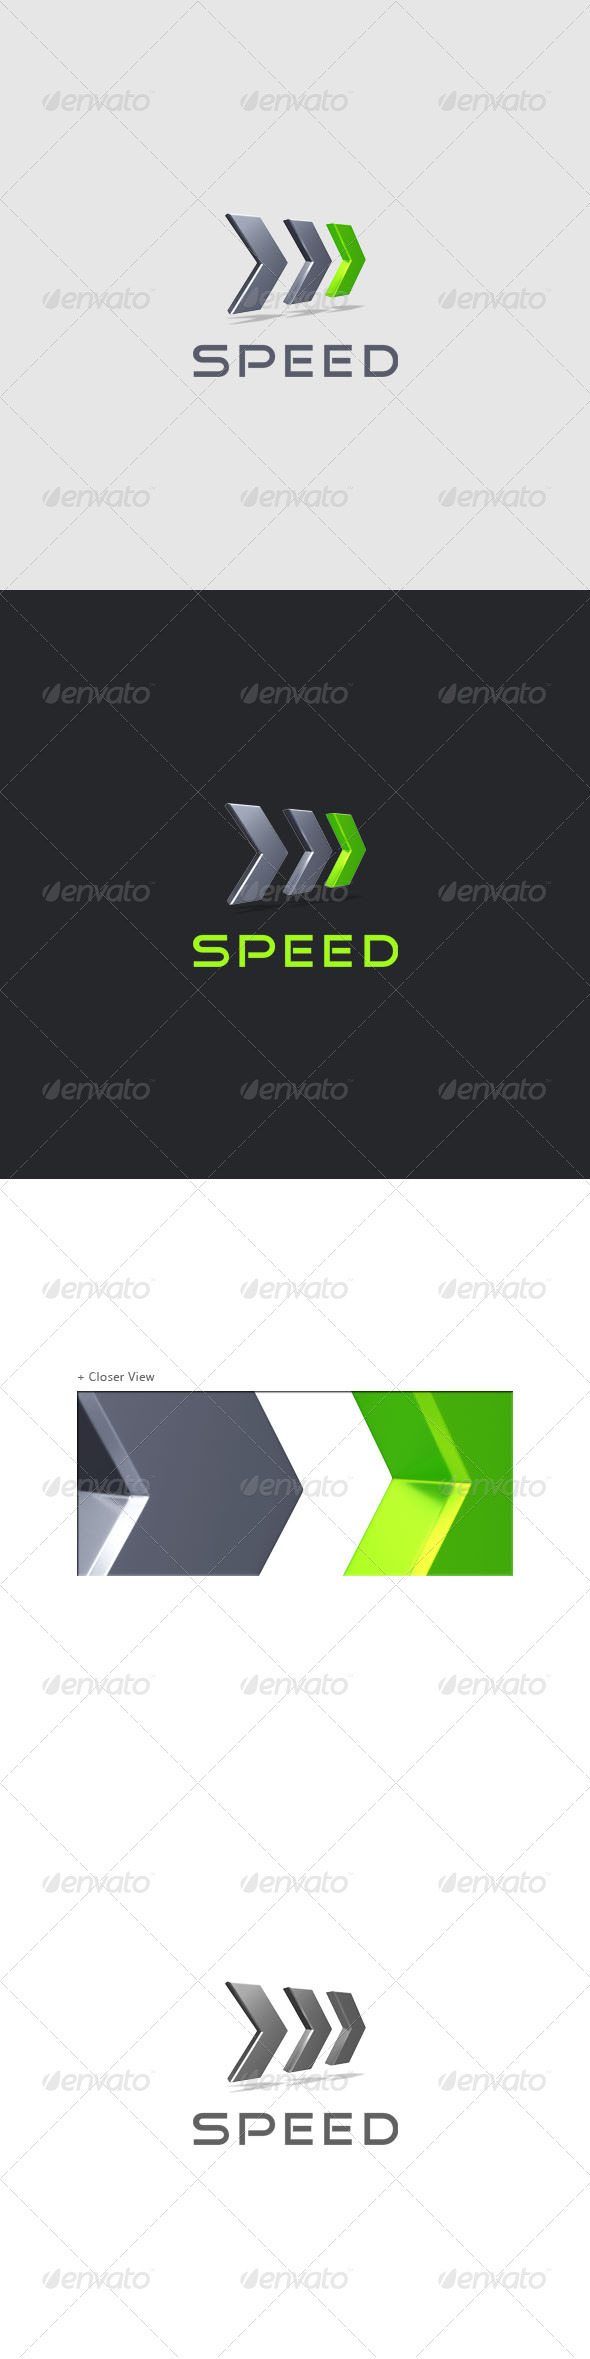 Speed - Performance Logo 3D - 3d Abstract